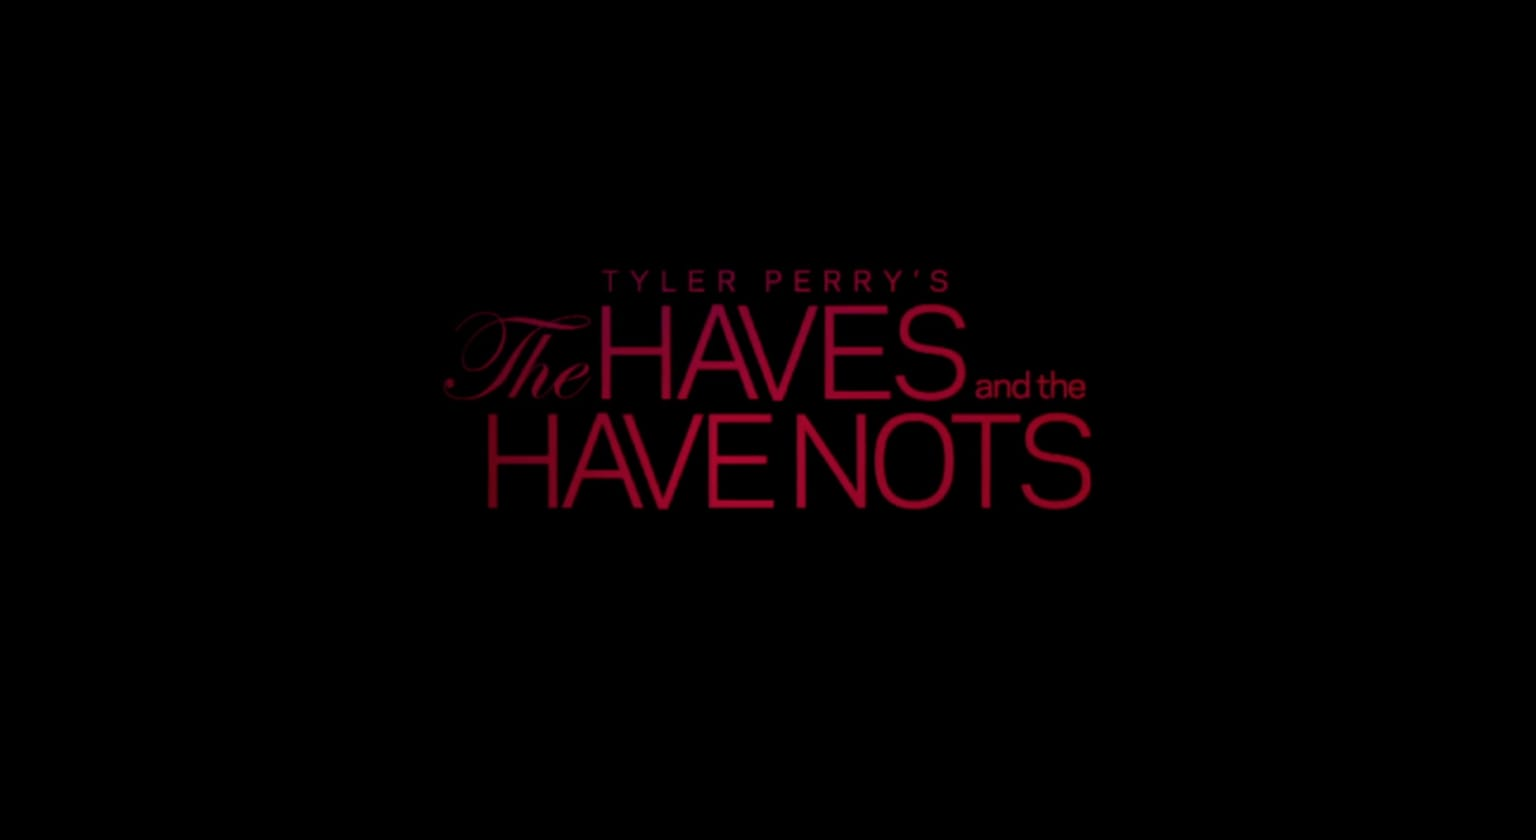 Tyler Perry's - The Haves and the Have Nots